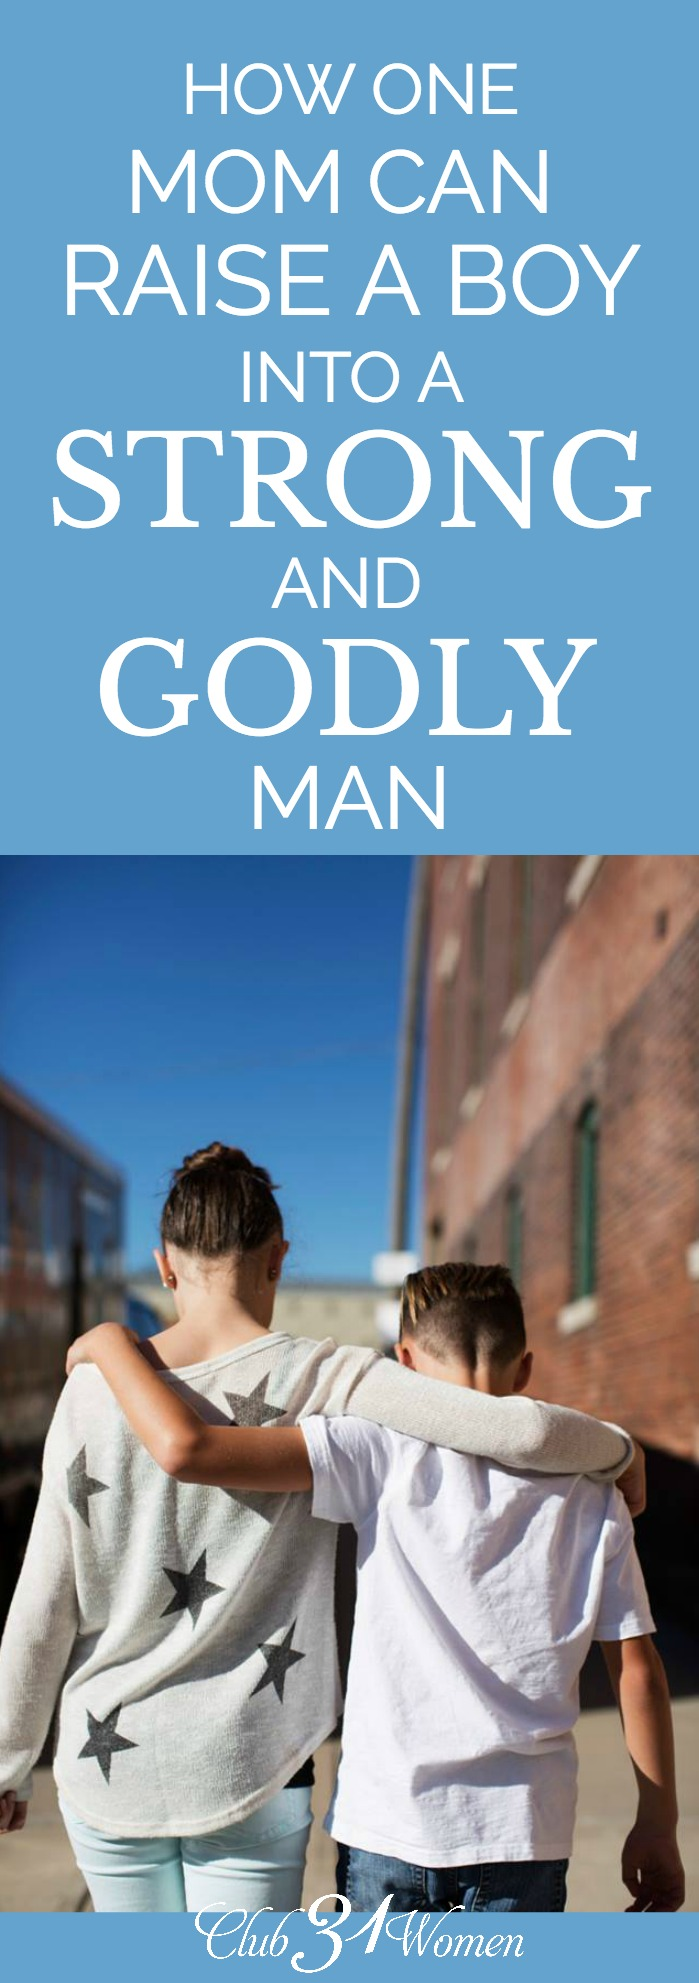 Raising boys can be challenging enough but what if there is no male, Godly role model at home? Here are some ways to raise sons into strong and Godly men. via @Club31Women